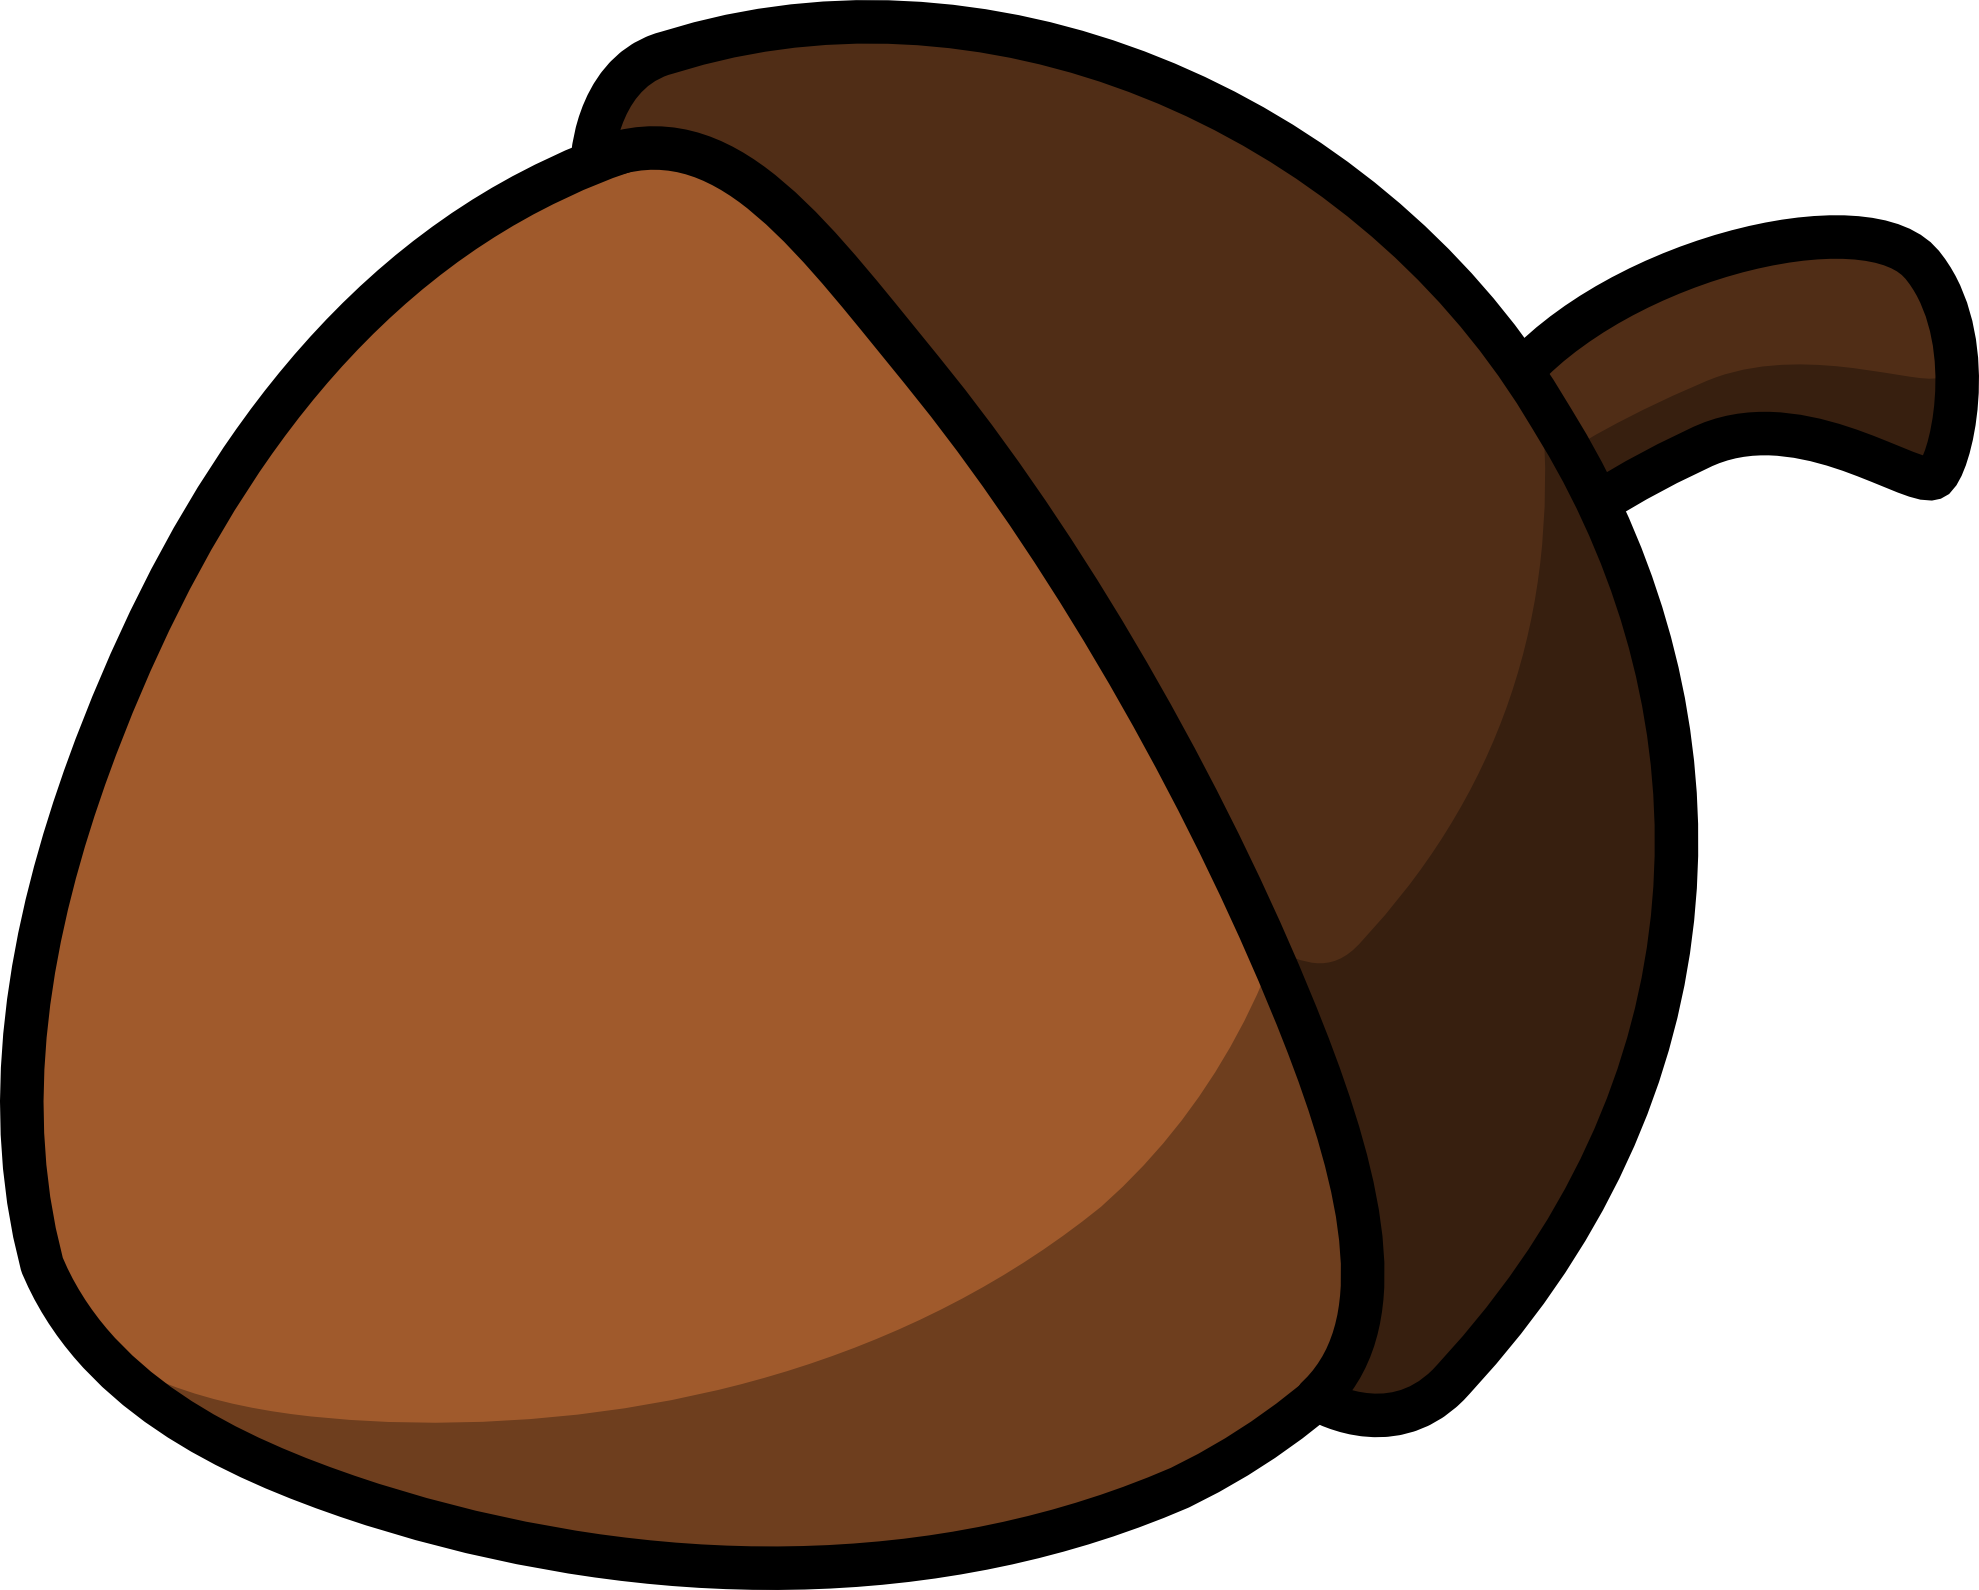 Acorn svg. Free clip art cartoon